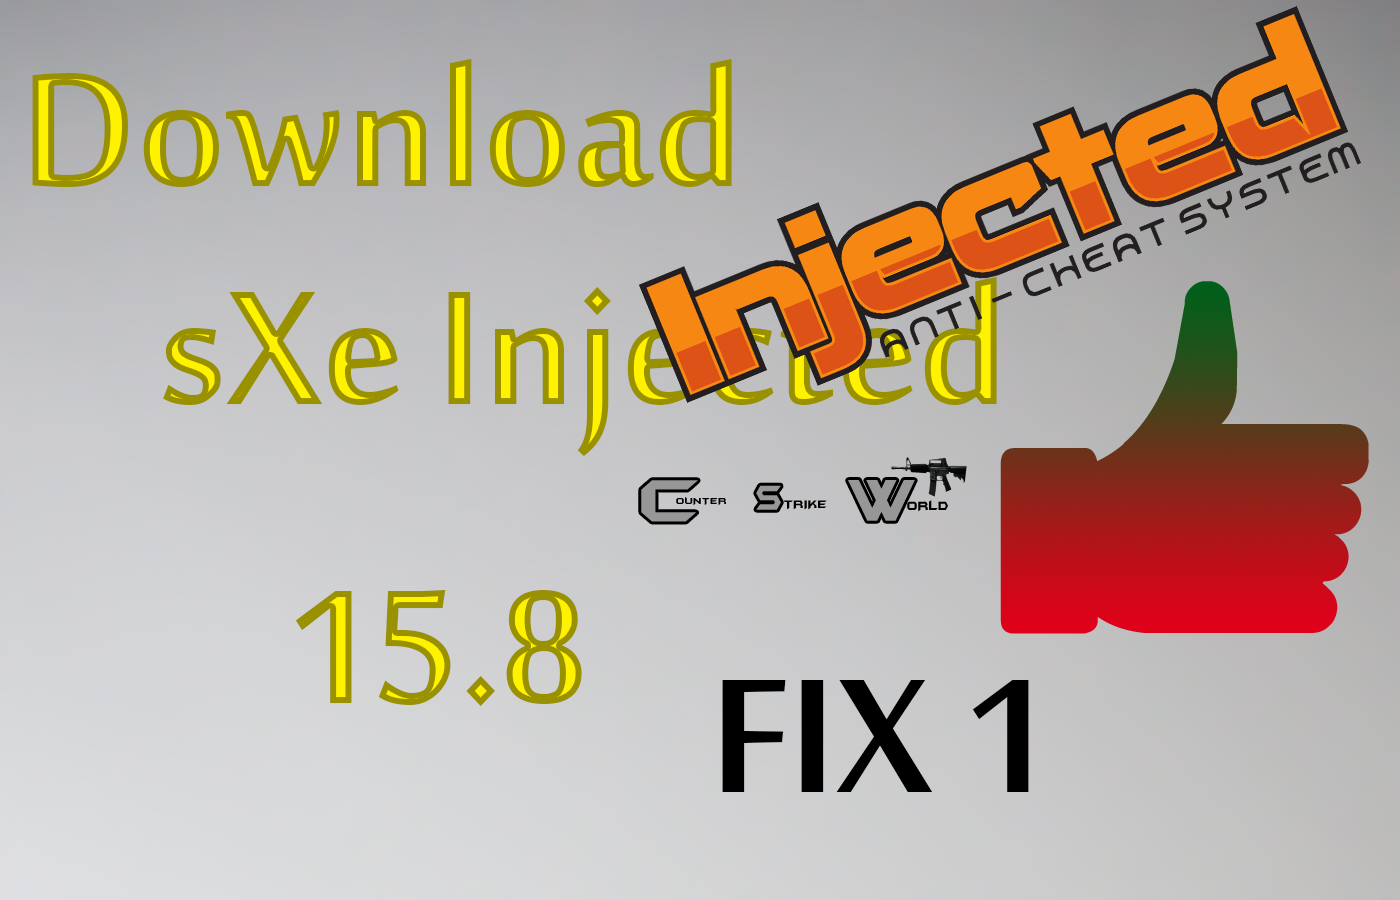 download updated sxe injected 15.8 fix 1 - counter strike world